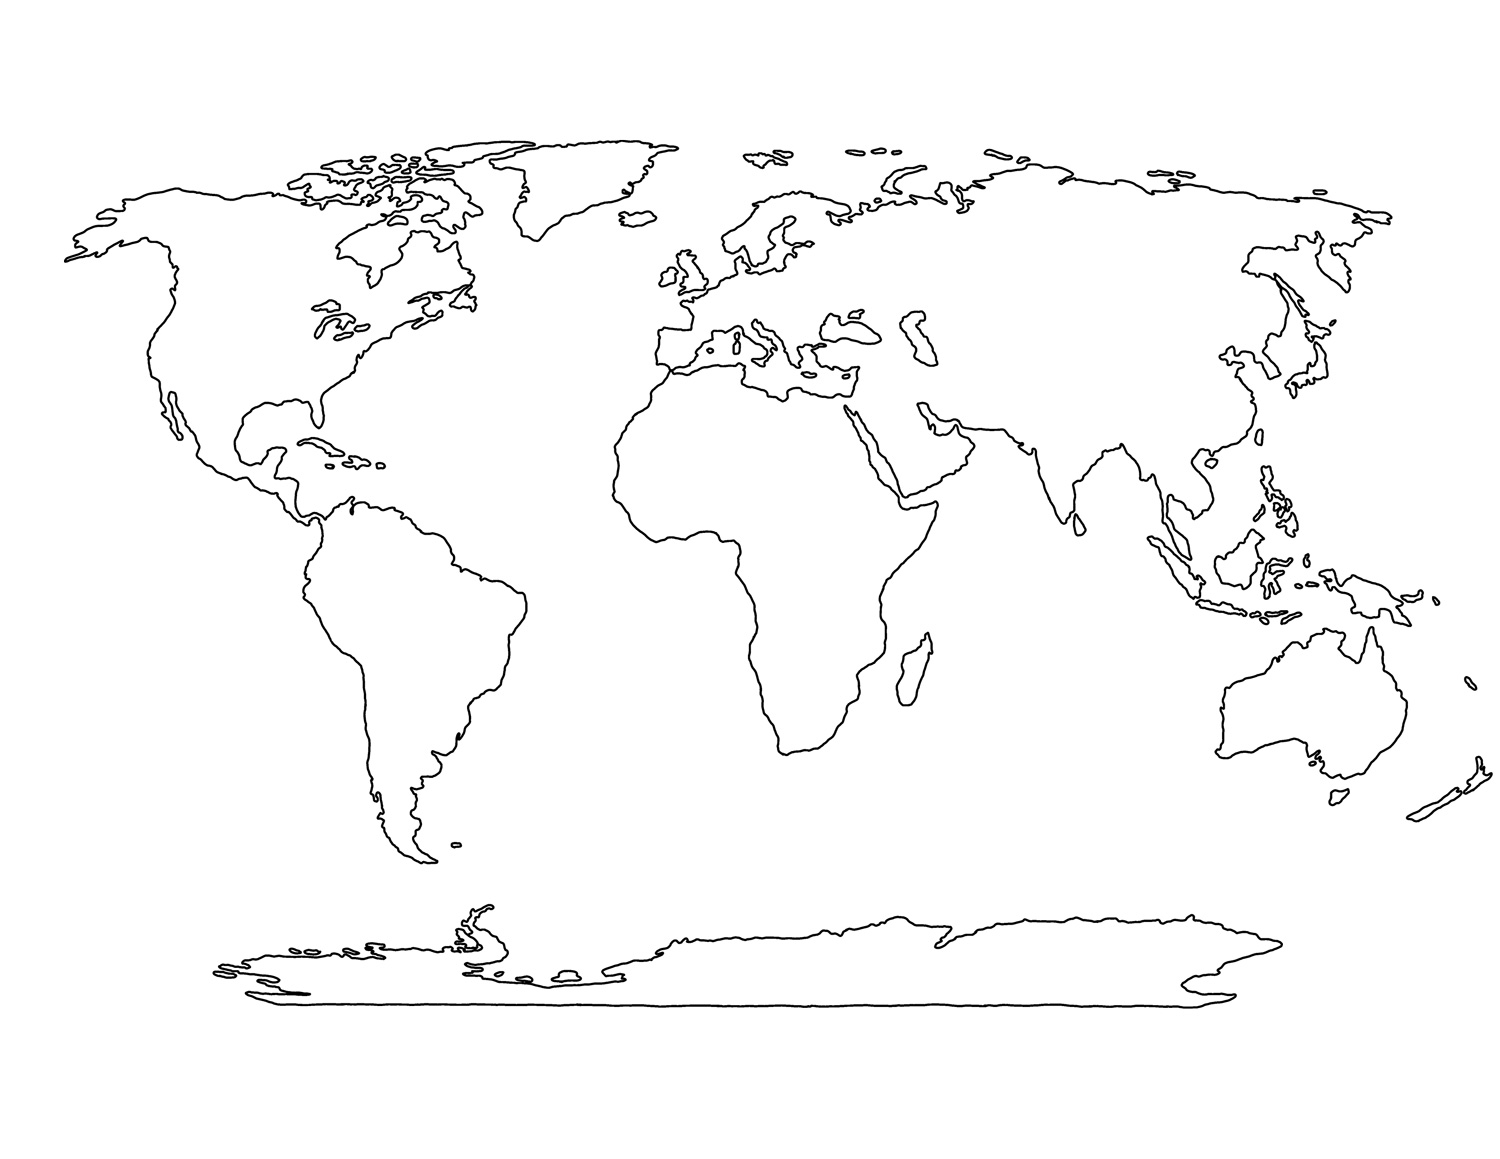 Printable Blank World Map Template For Students And Kids